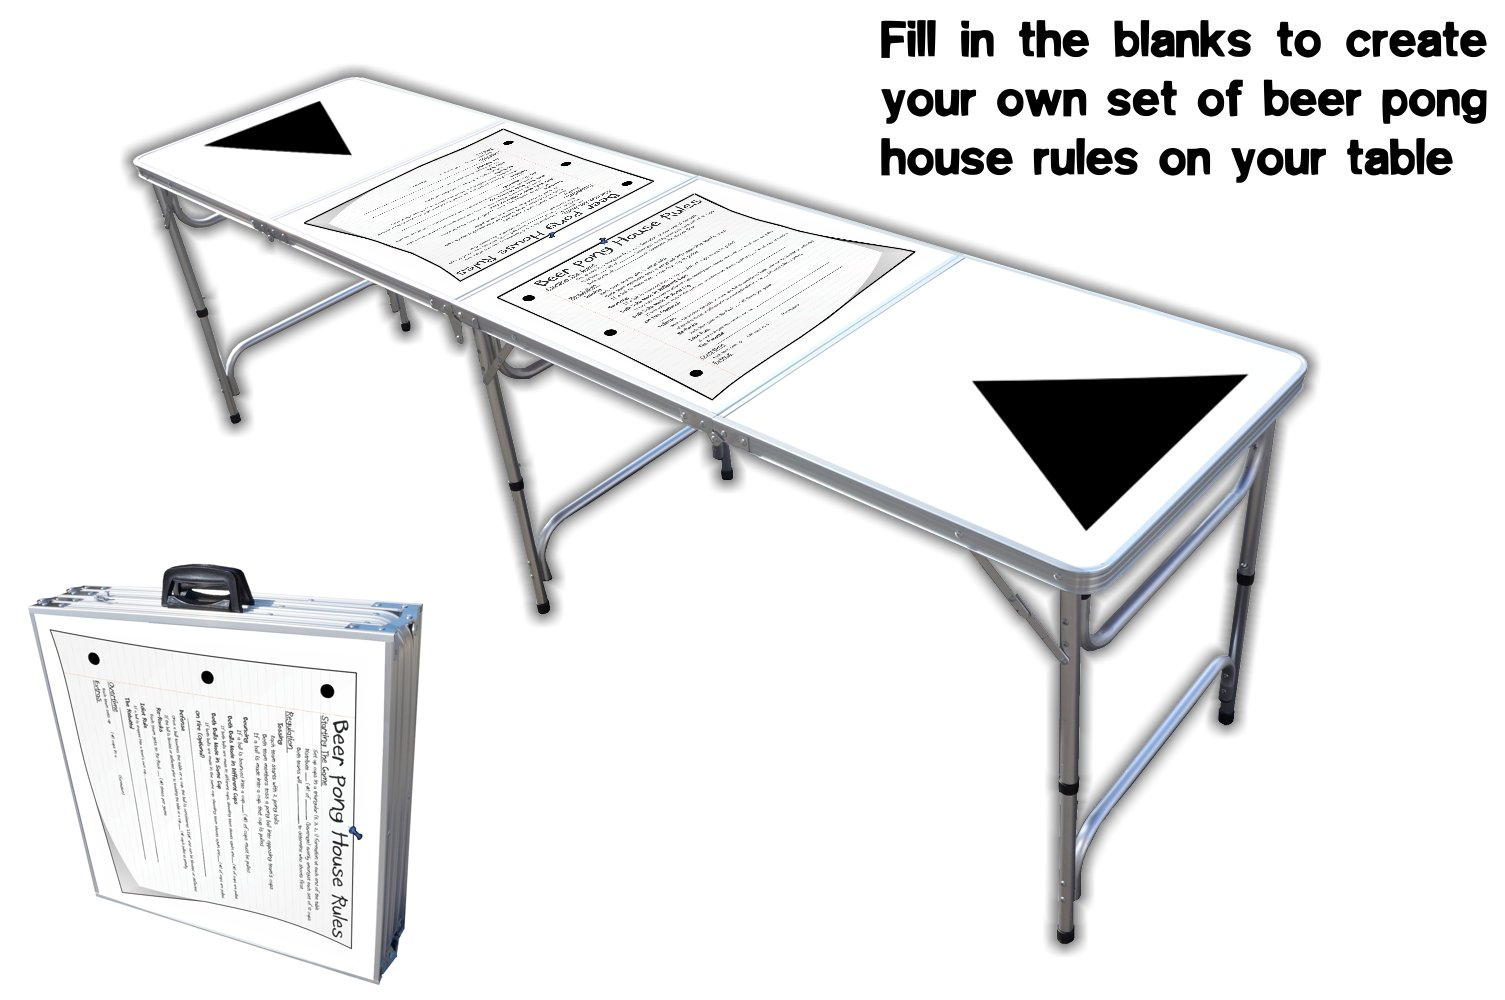 8-Foot Professional Beer Pong Table - House Rules Graphic